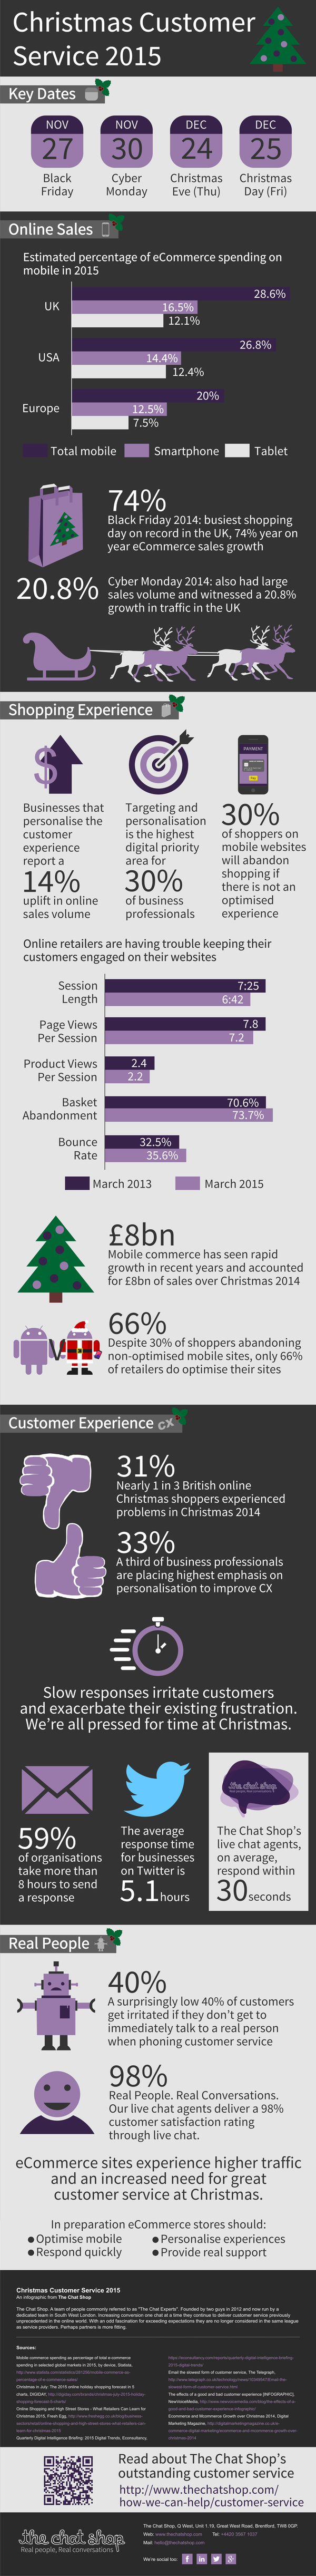 Christmas Customer Service 2015 #infographic